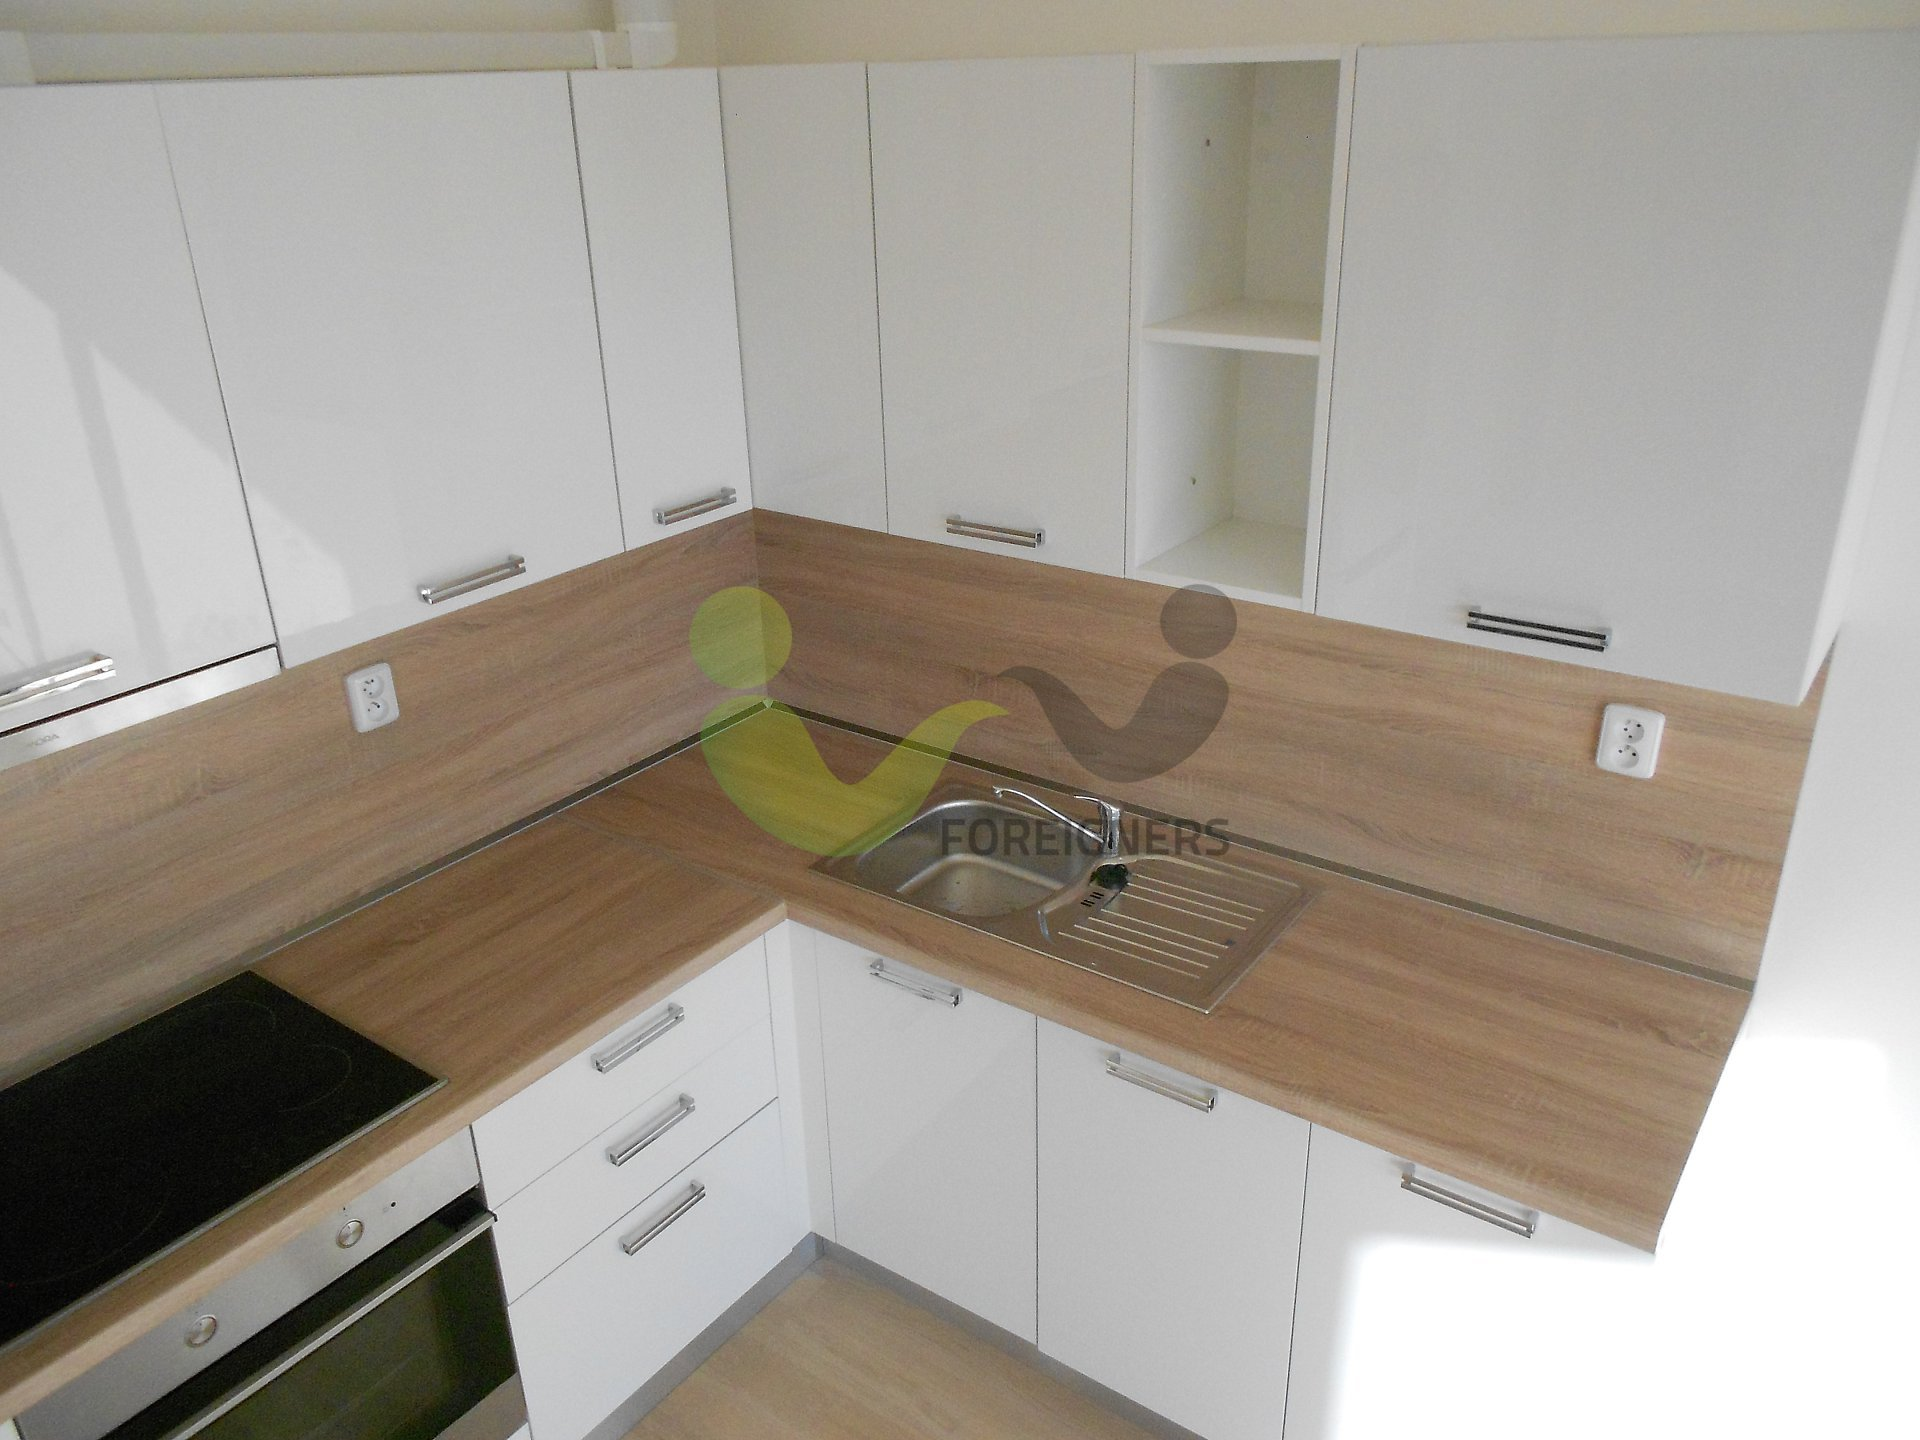 1 Bedroom 2 Kk Apartment For Rent In Brno Foreigners Cz